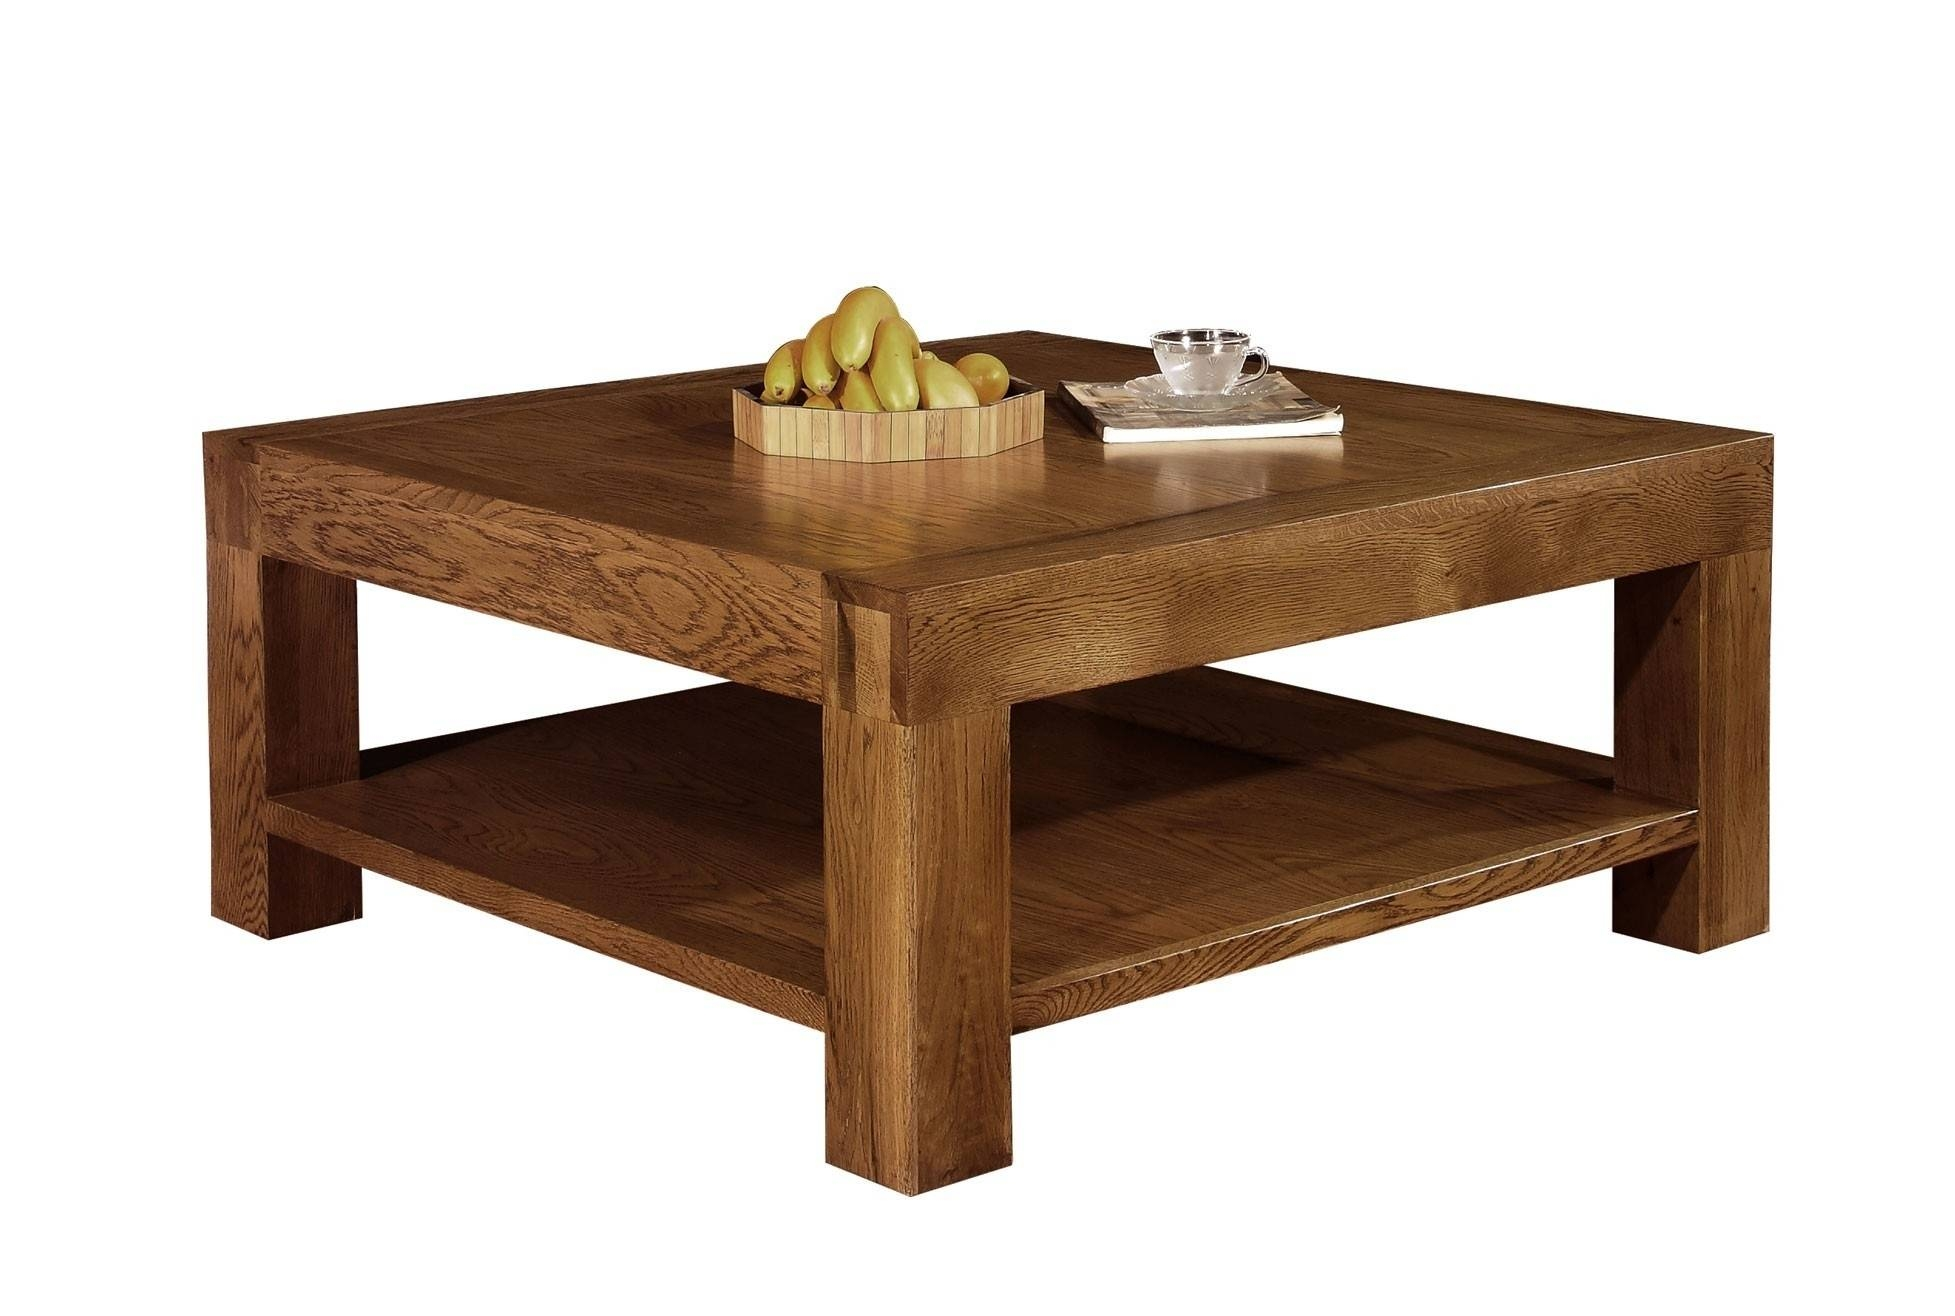 Large Square Coffee Table Wood Material Brown Finish 4 Legs Rustic intended for Rustic Style Coffee Tables (Image 24 of 30)